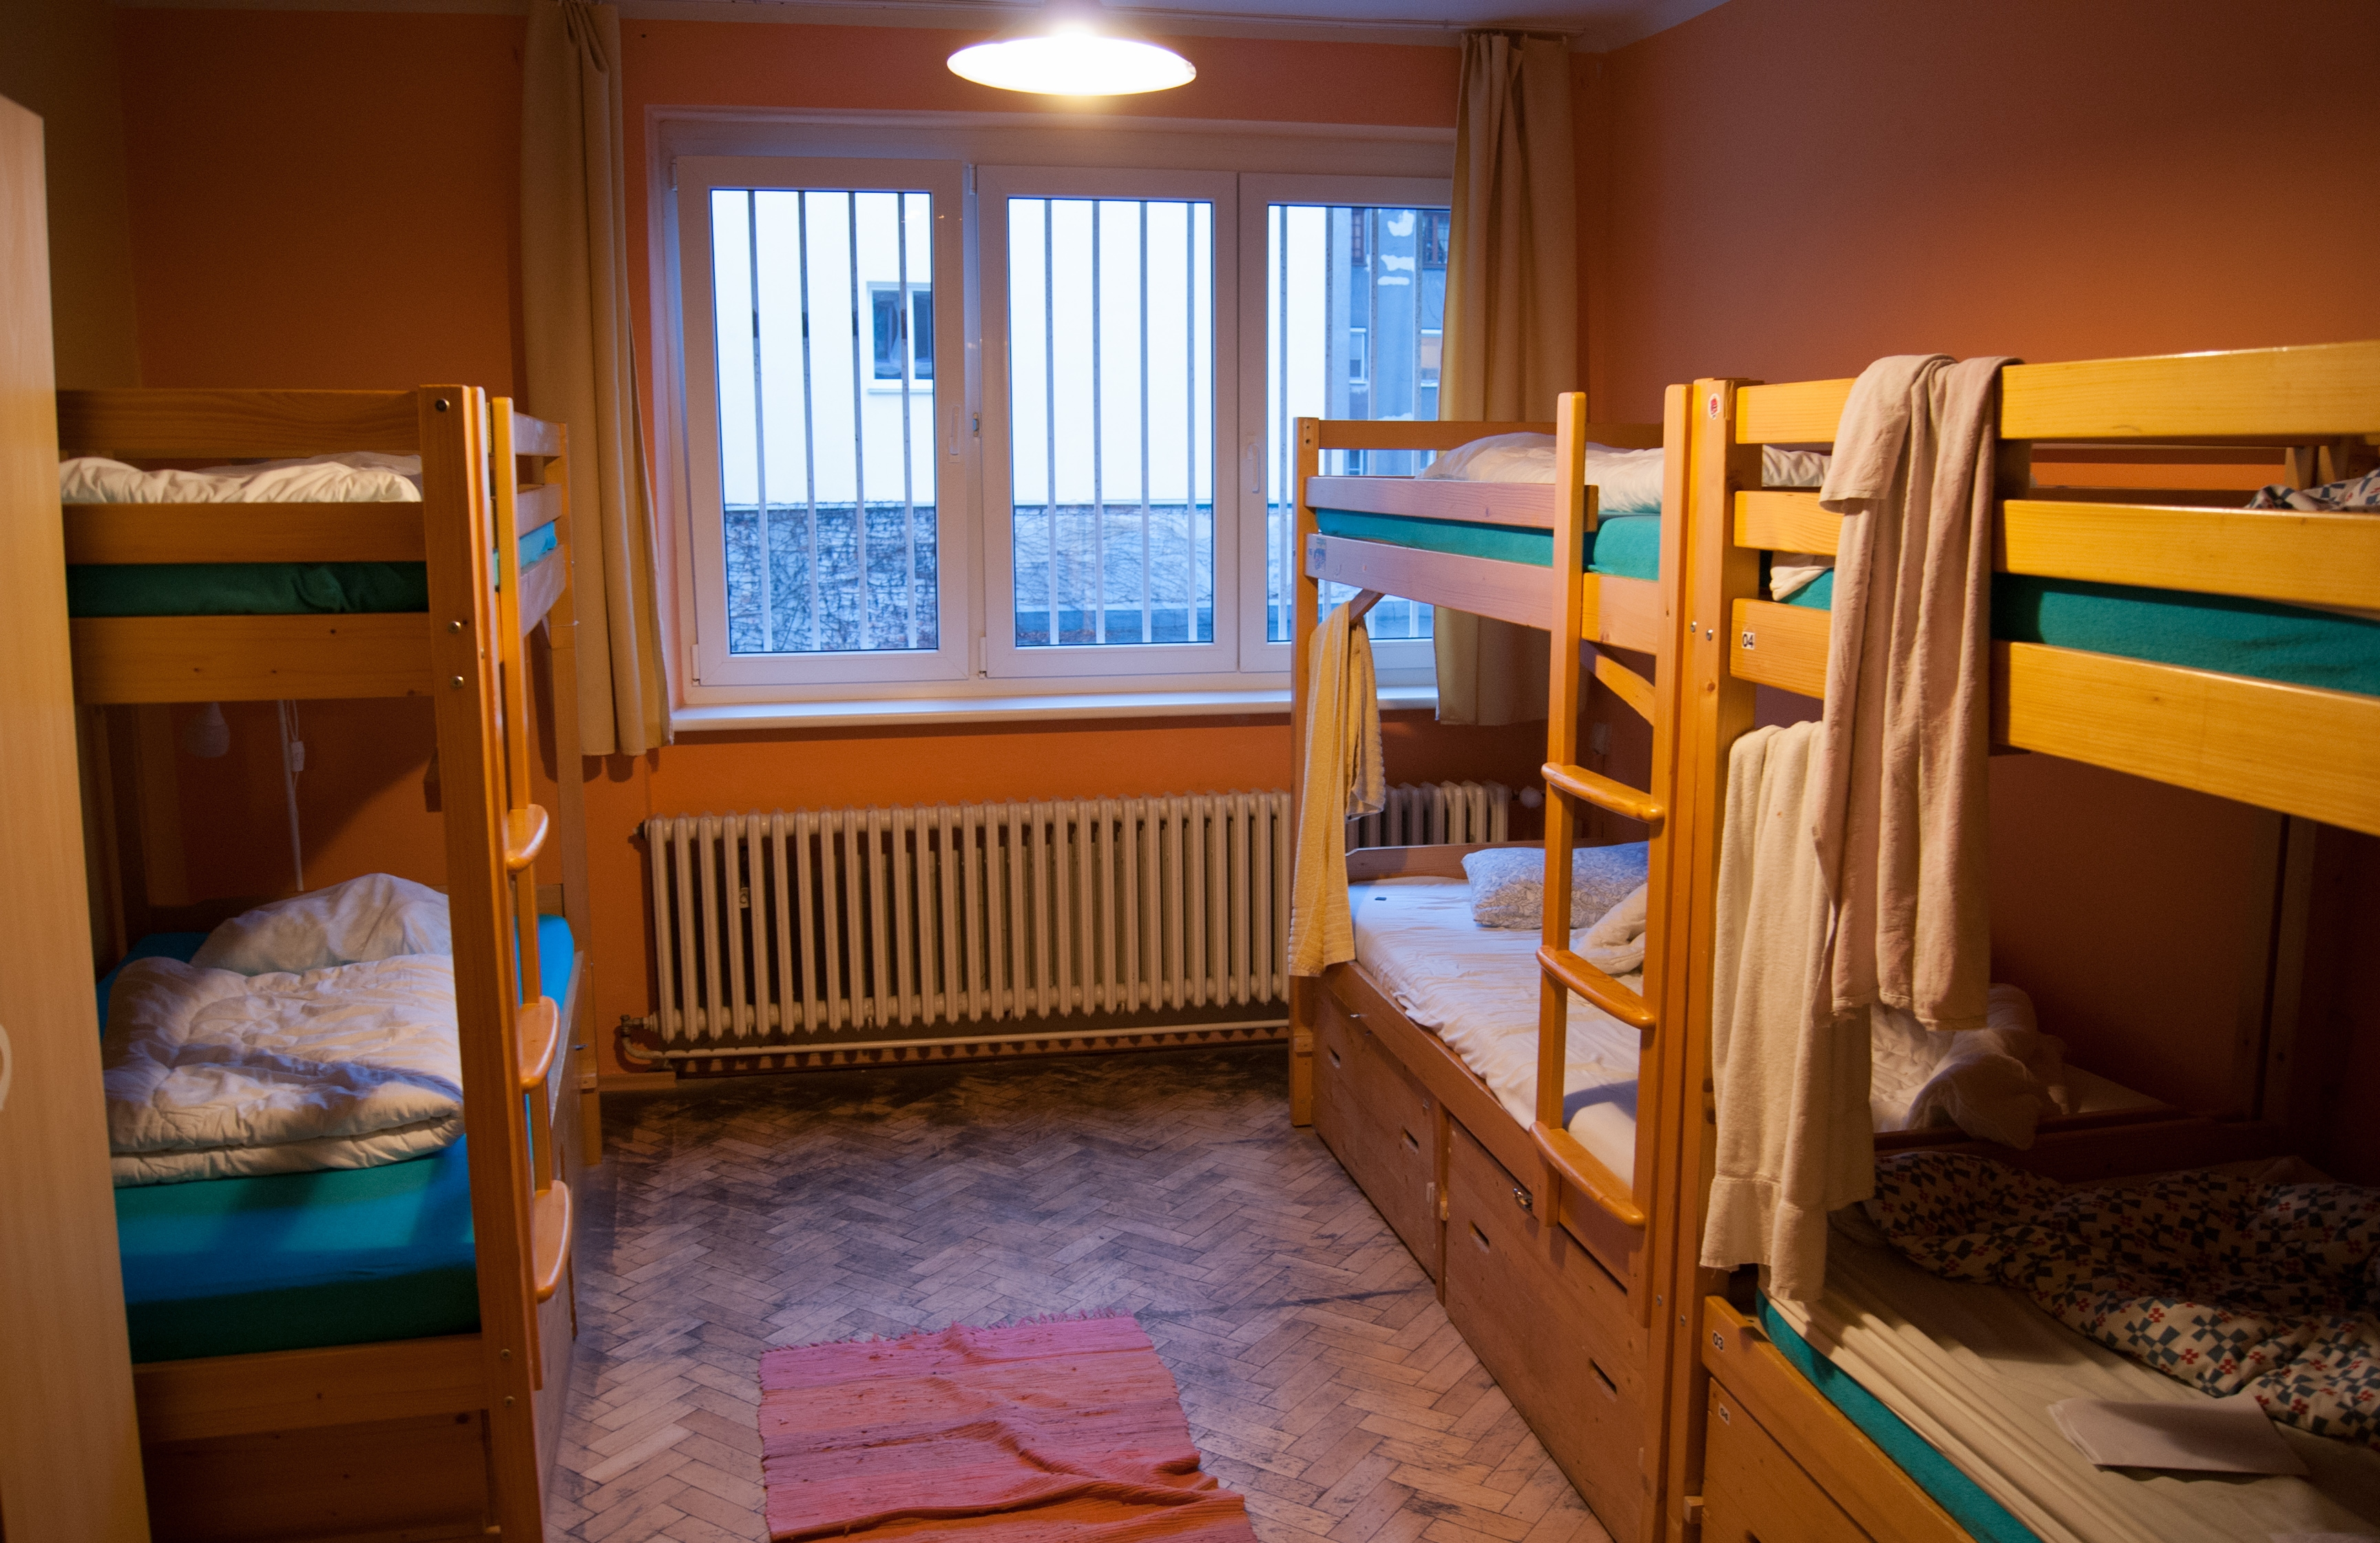 6 Tips For Your First Hostel Experience Me Want Travel